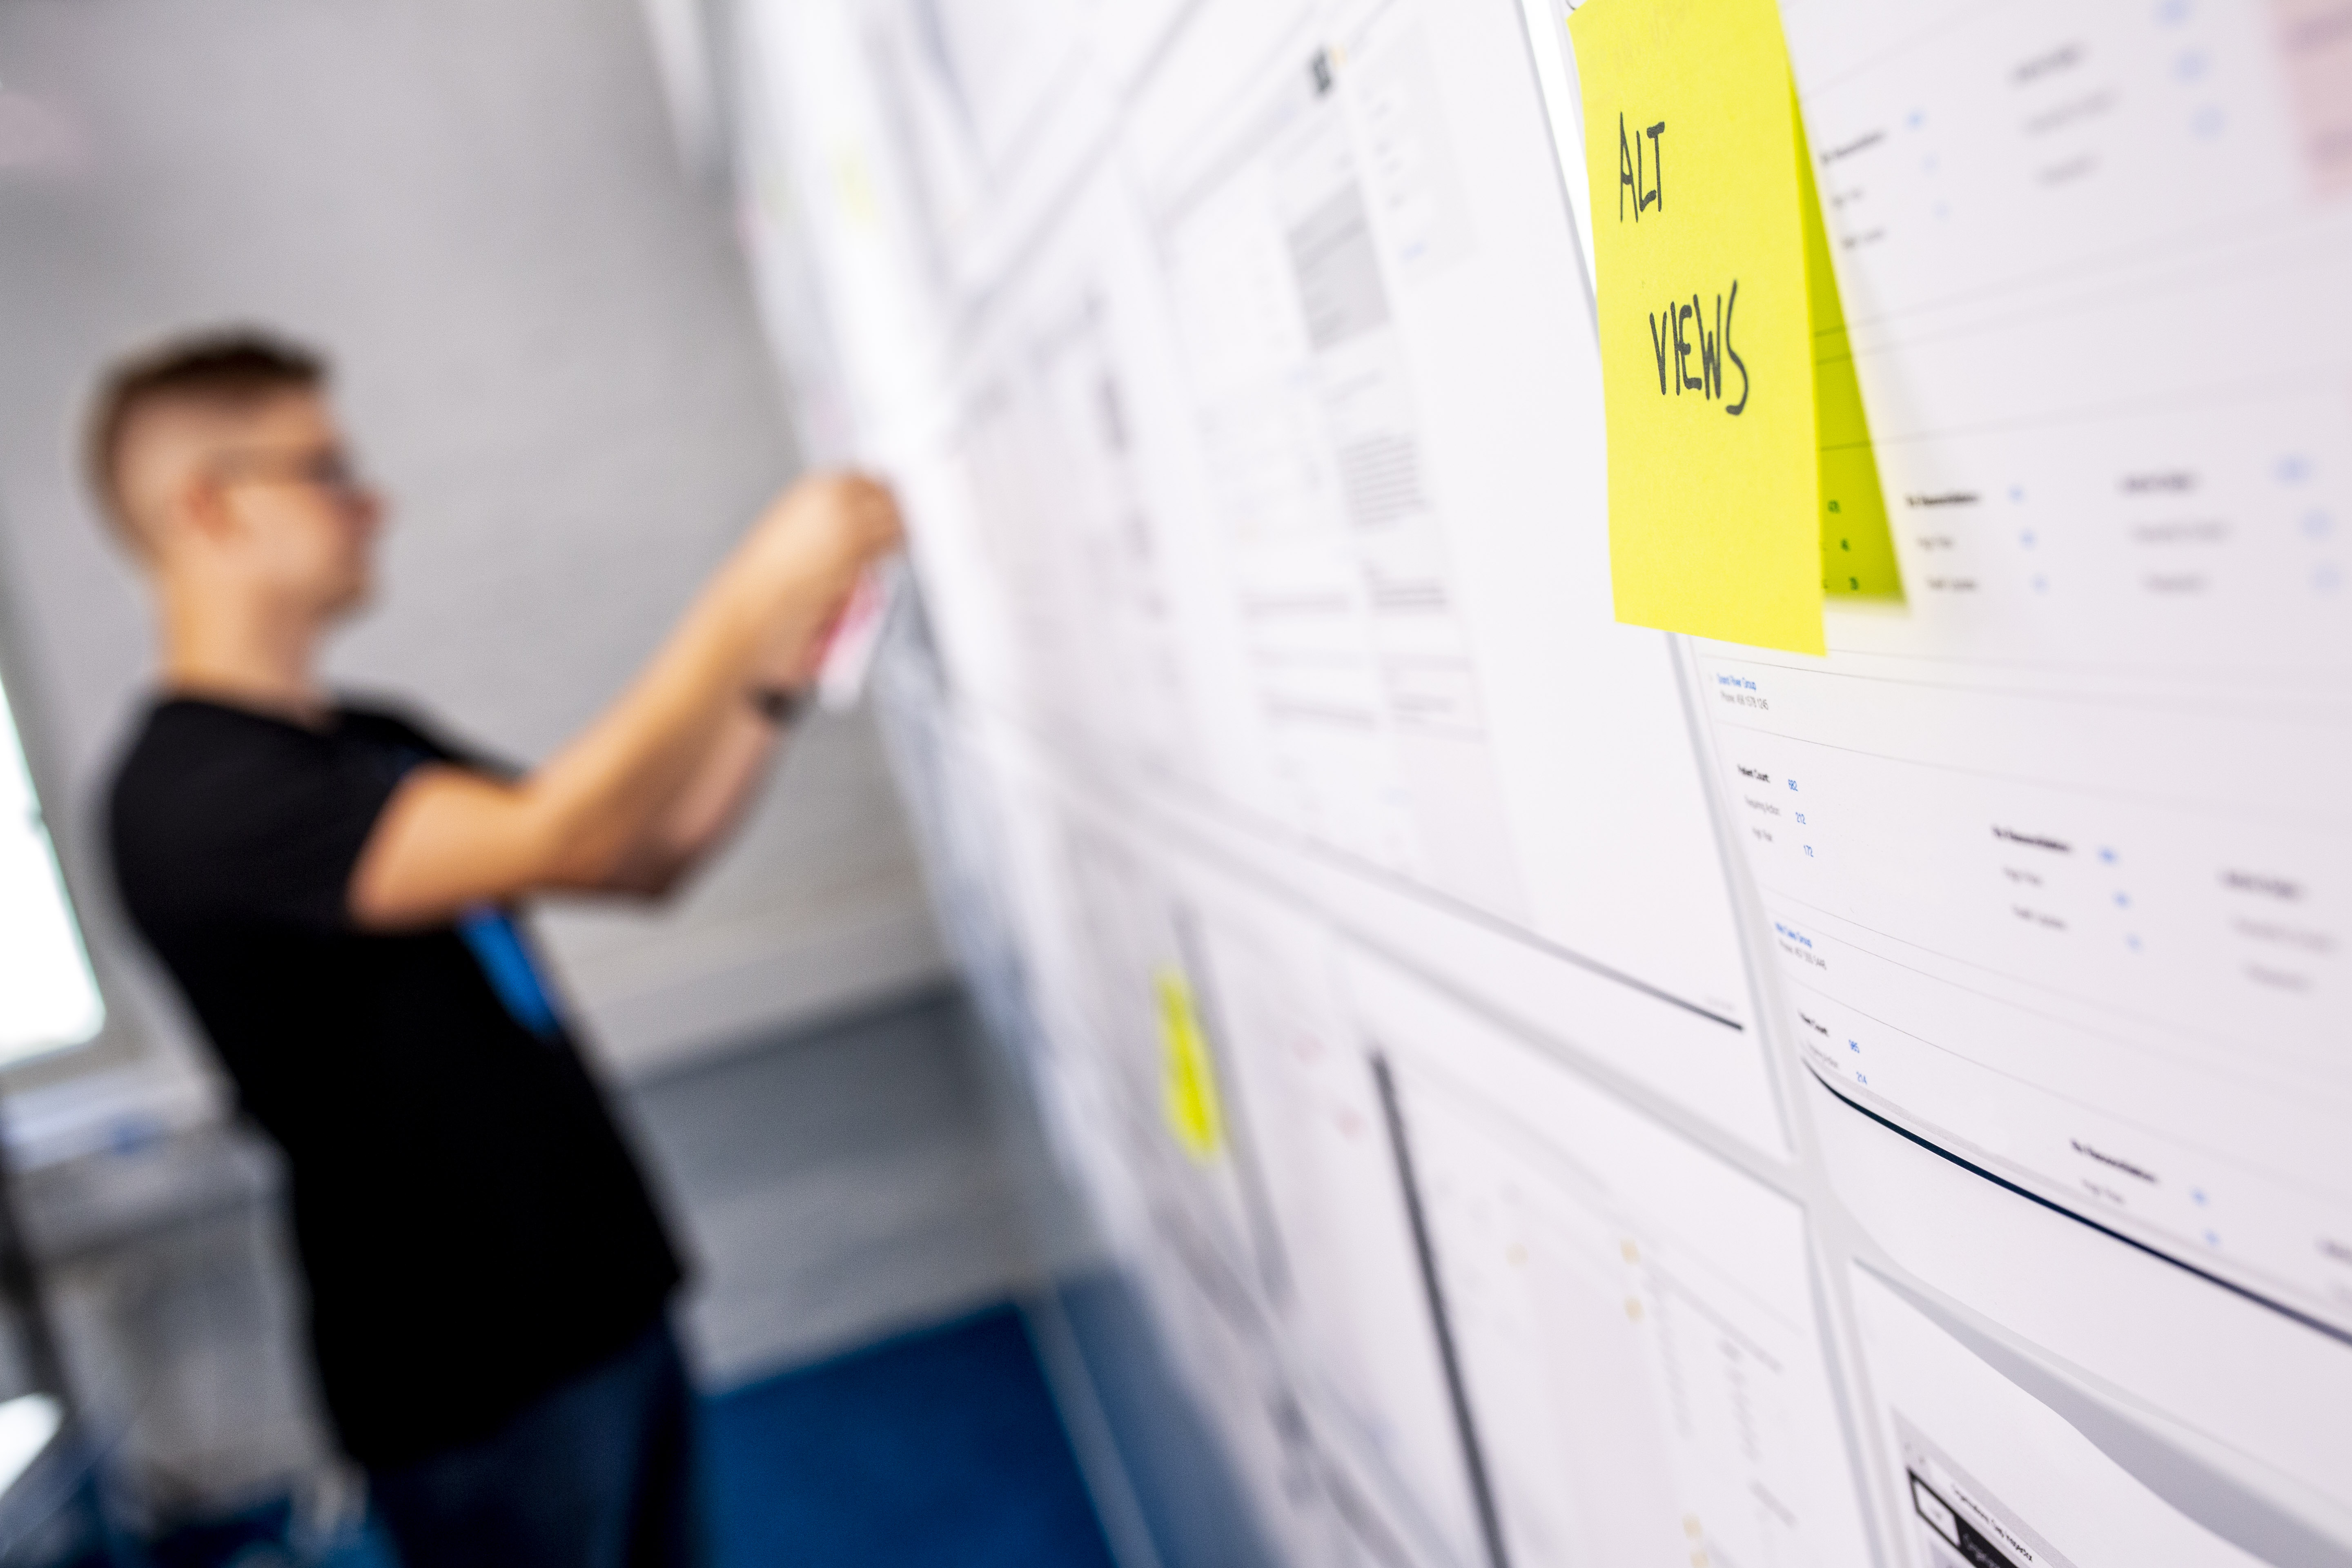 Planning the design of an app